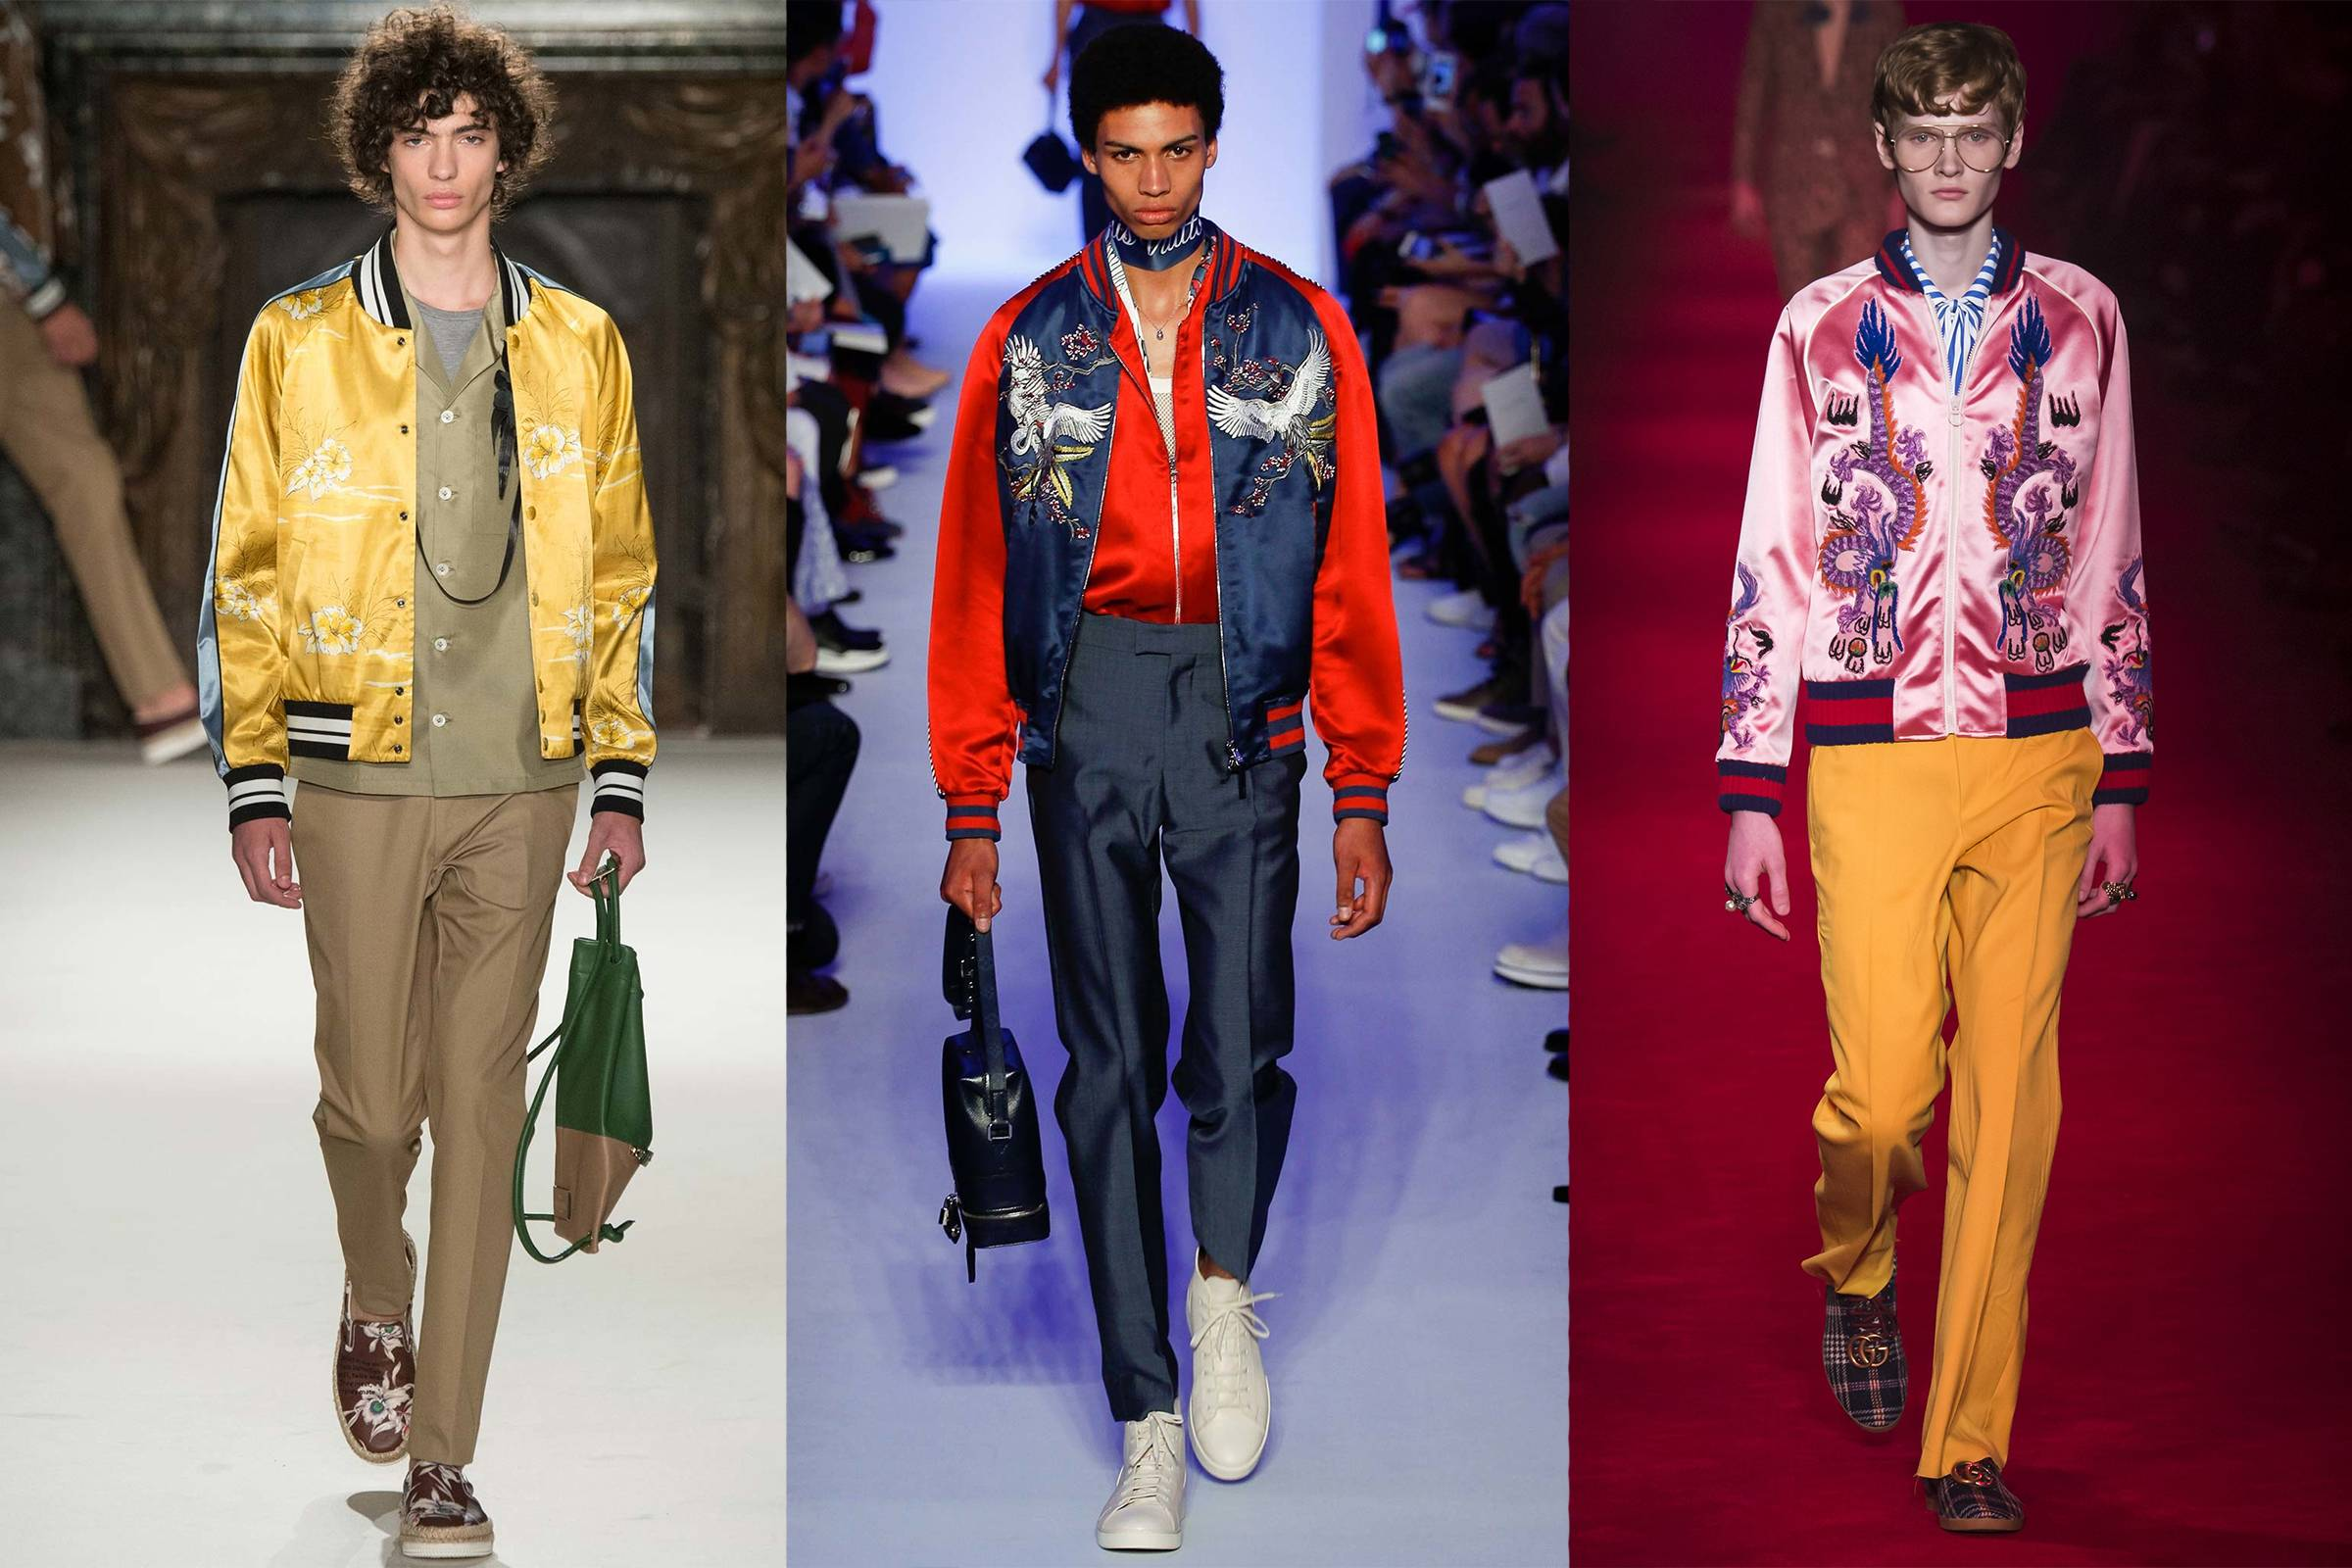 From left to right: Valentino Spring/Summer 2016 Menswear, Louis Vuitton Spring/Summer 2016 Menswear and Gucci Fall 2016 Menswear